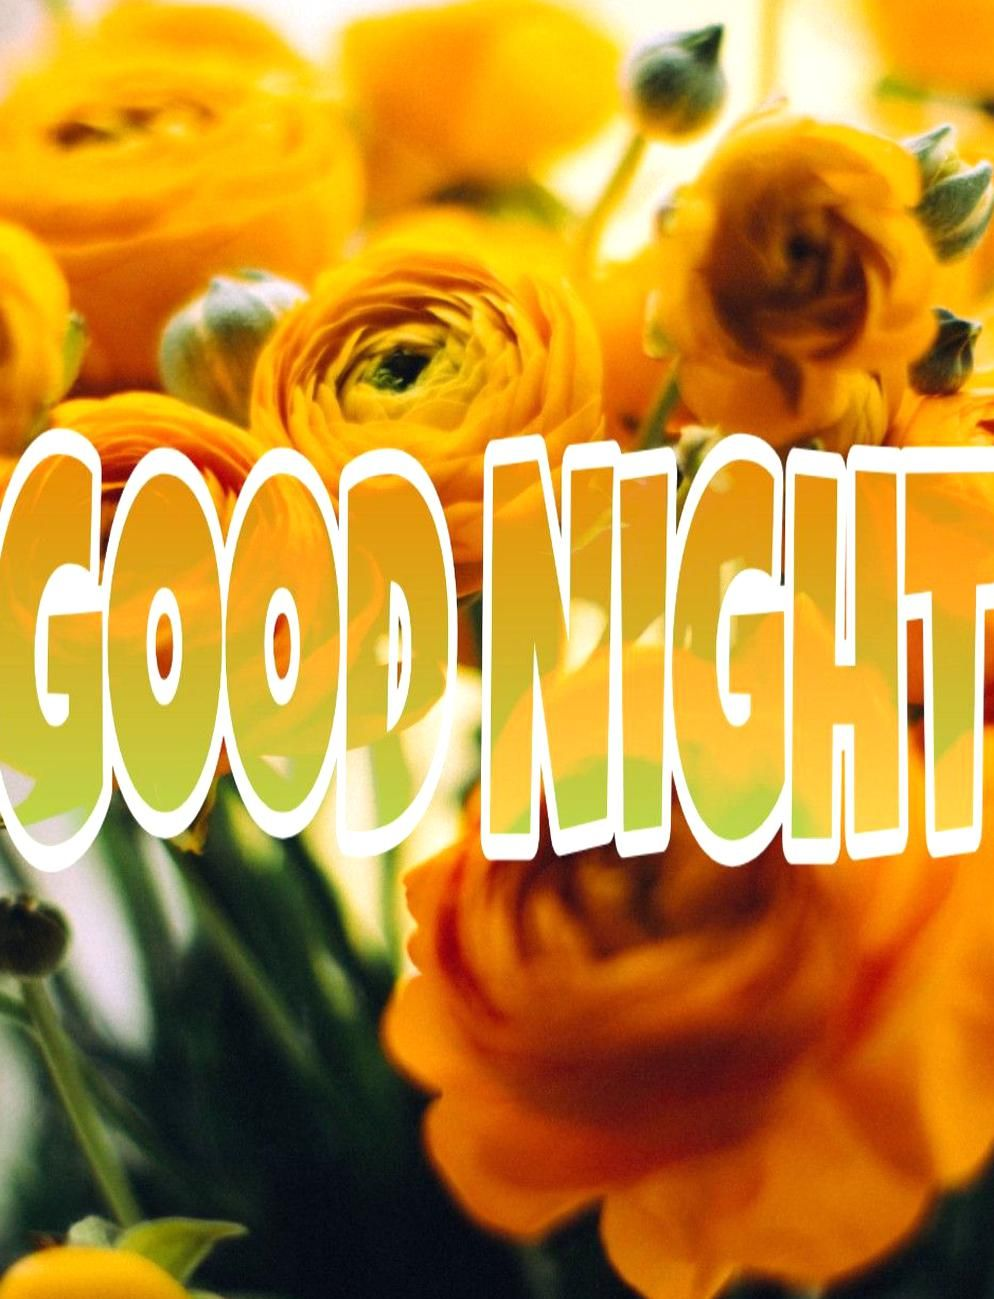 Here Is The Collection Of Good Night Yellow Rose Flower Images For Whatsapp Download These Photos Pictures Free A In 2020 Instagram Dp Yellow Rose Flower Flower Images